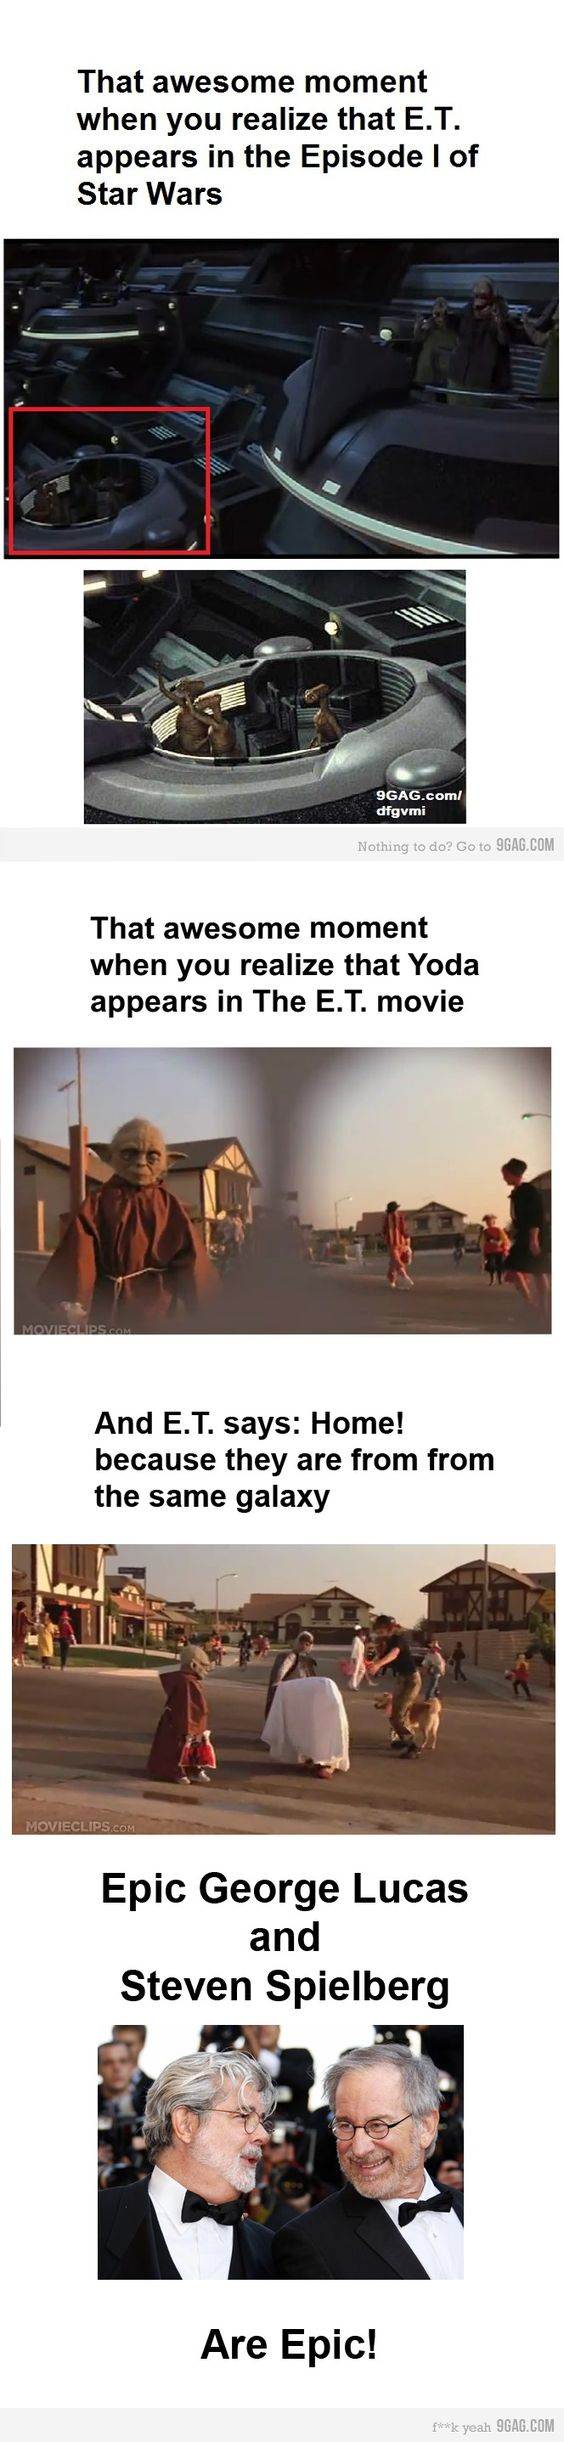 Oh yeah, I remember freaking out just a bit when I saw members of E.T.'s species in The Phantom Menace.